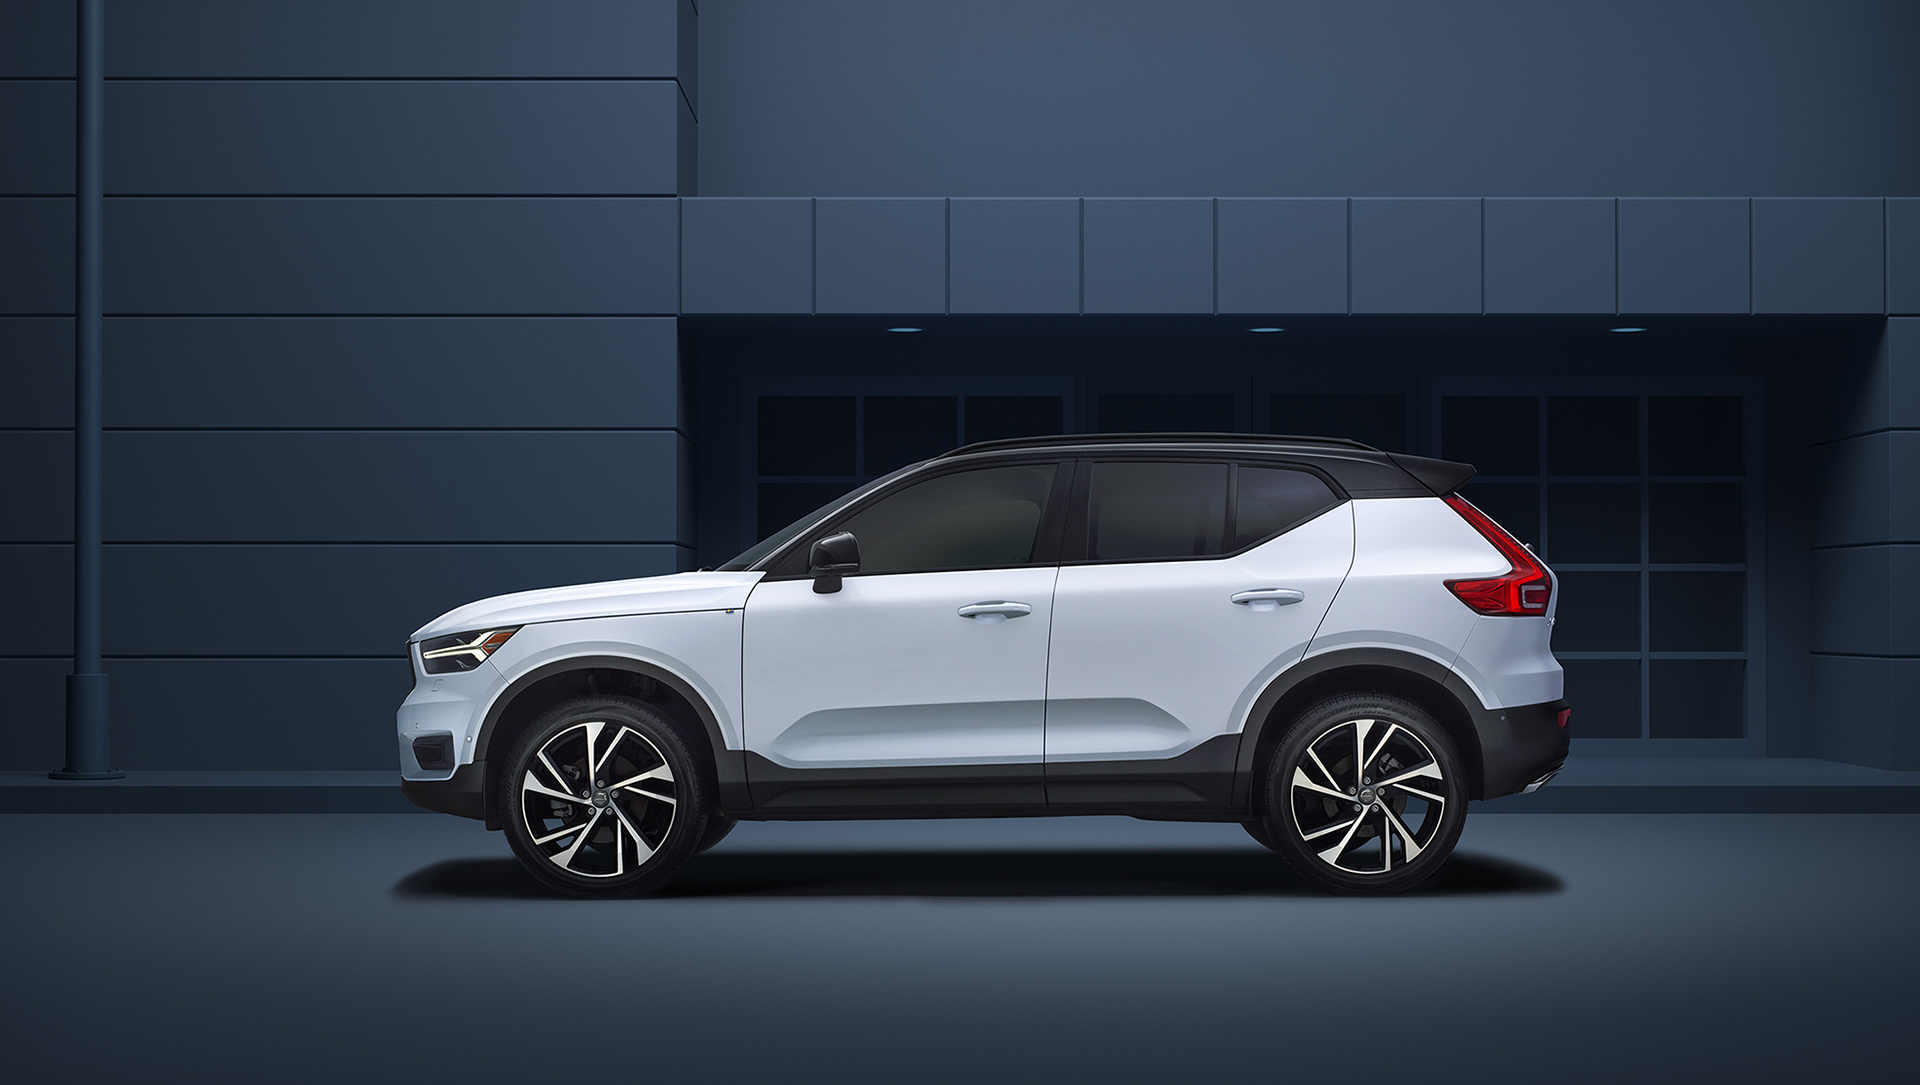 VolvoXC40_Profile_FINAL_layered_just_carF_small